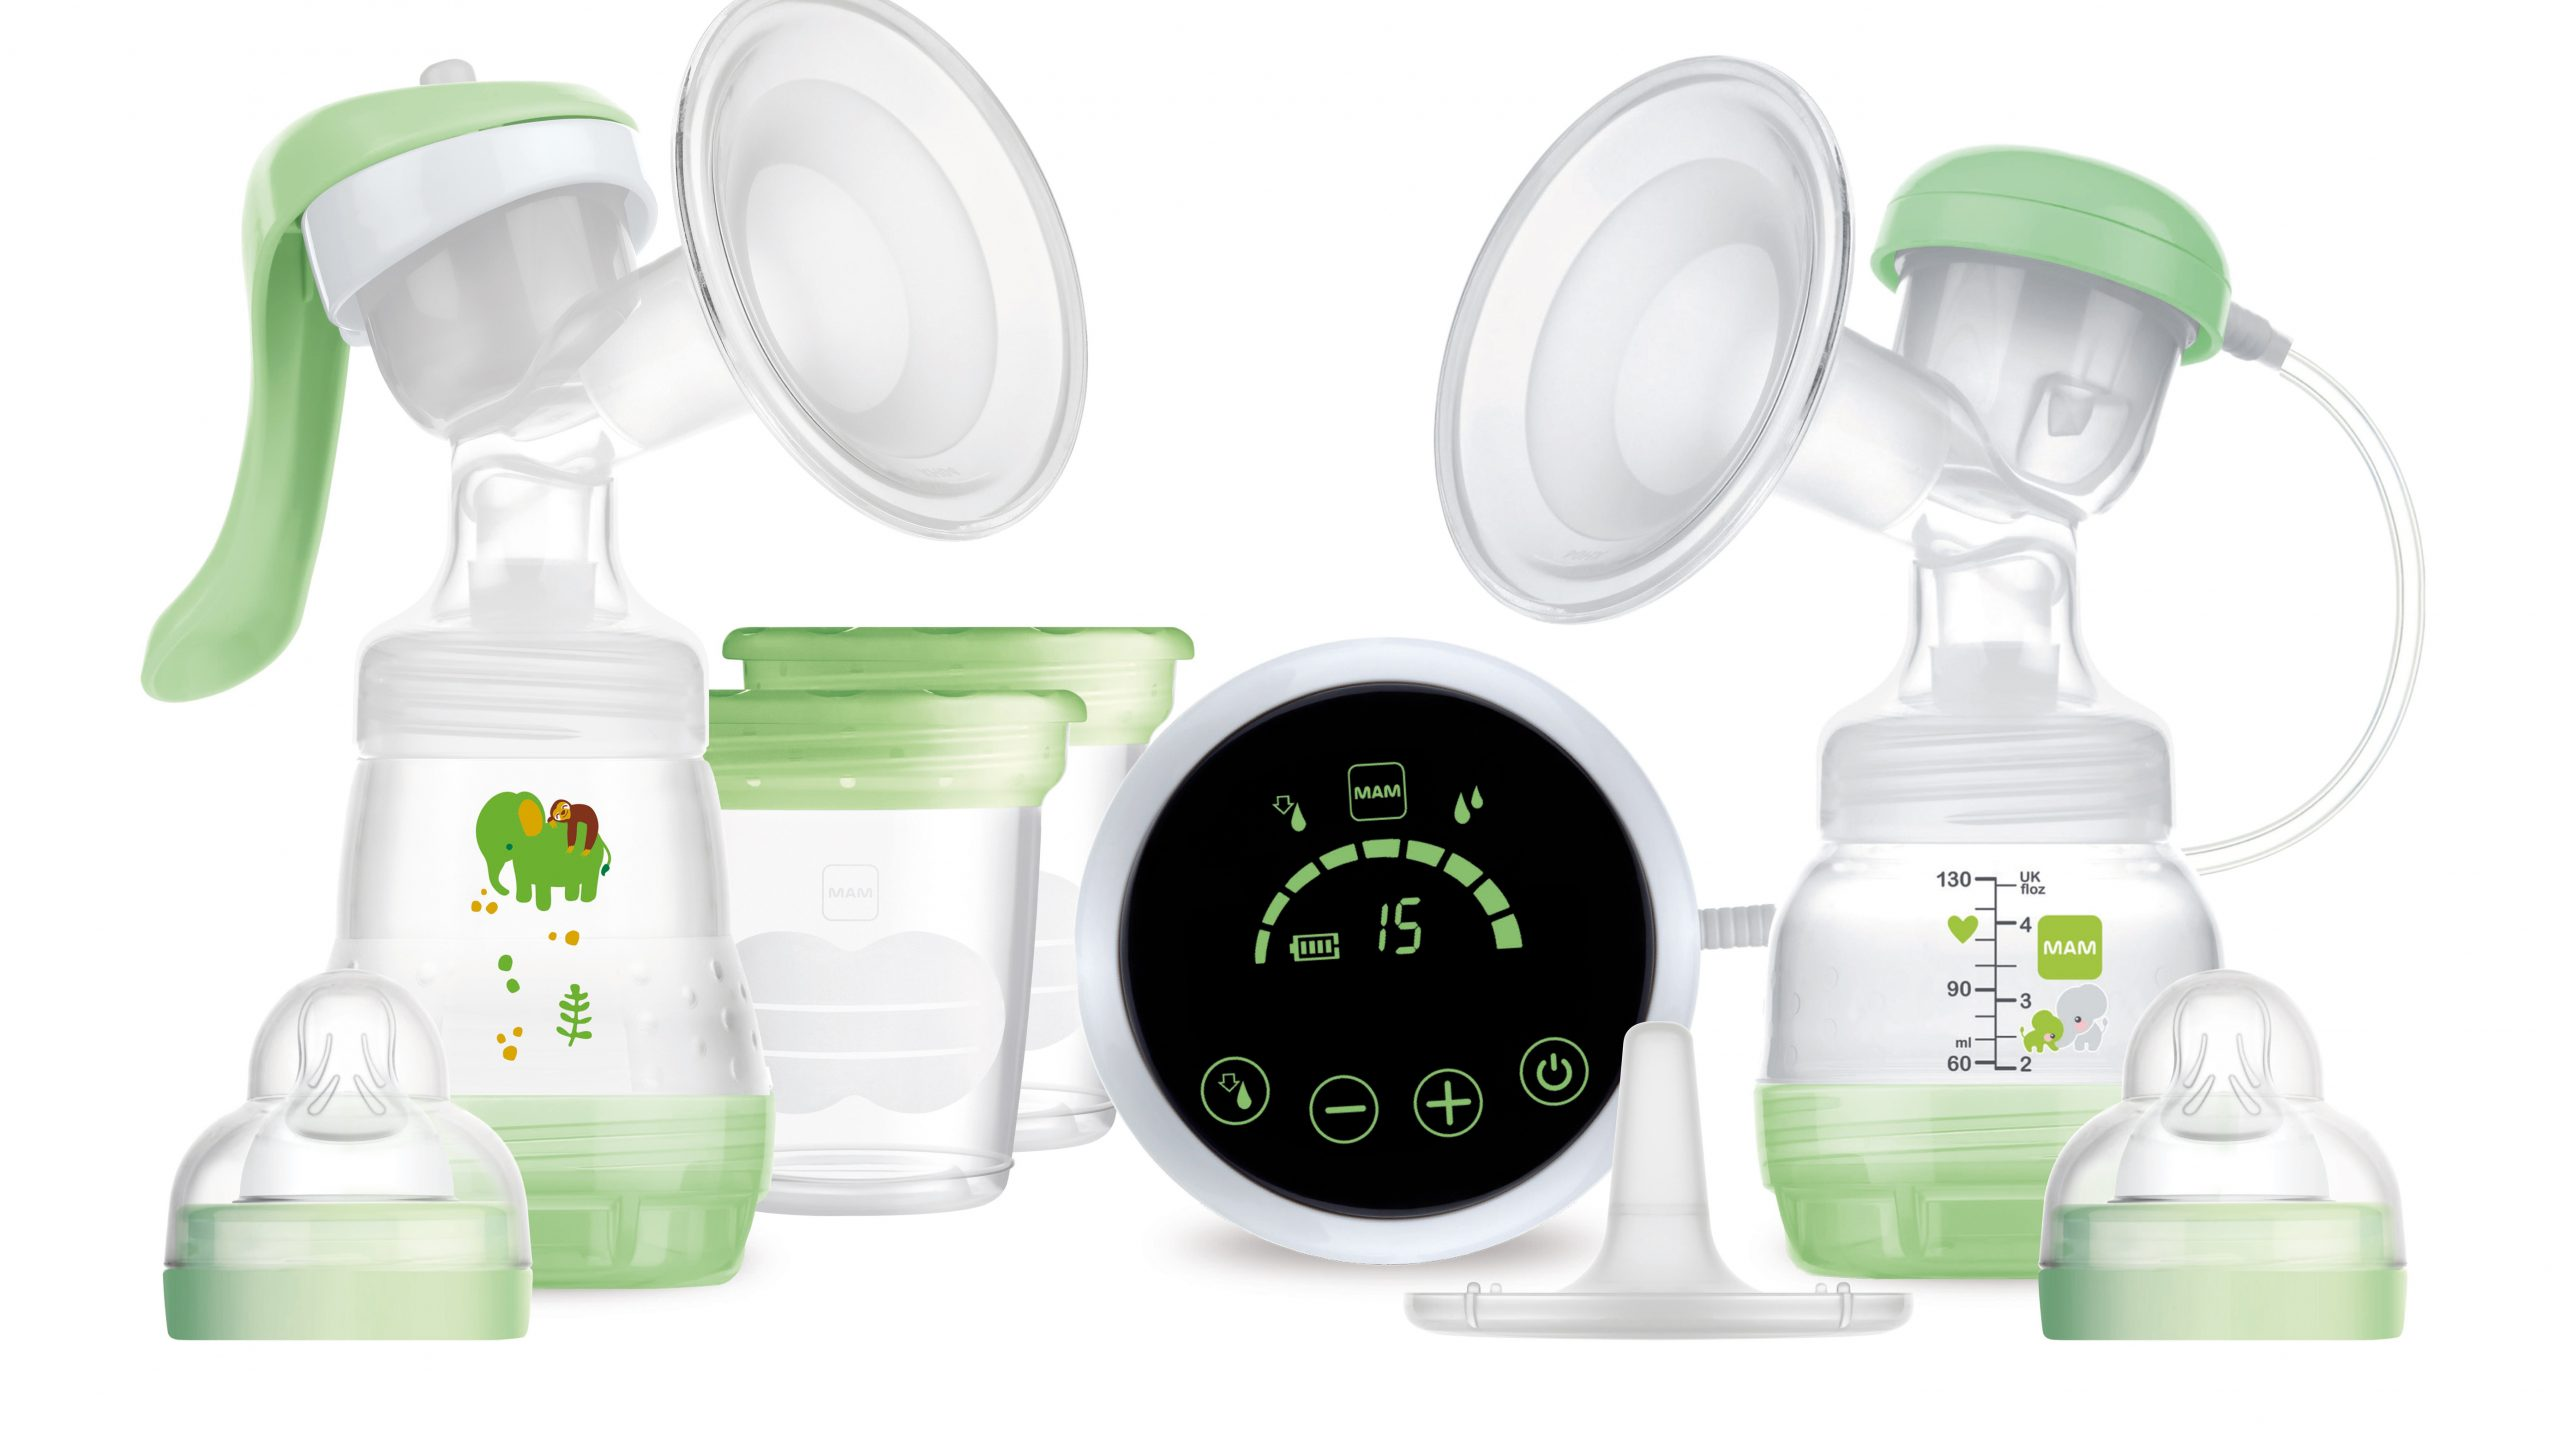 Mam 2-in-1 Electric and Manual Breast Pump